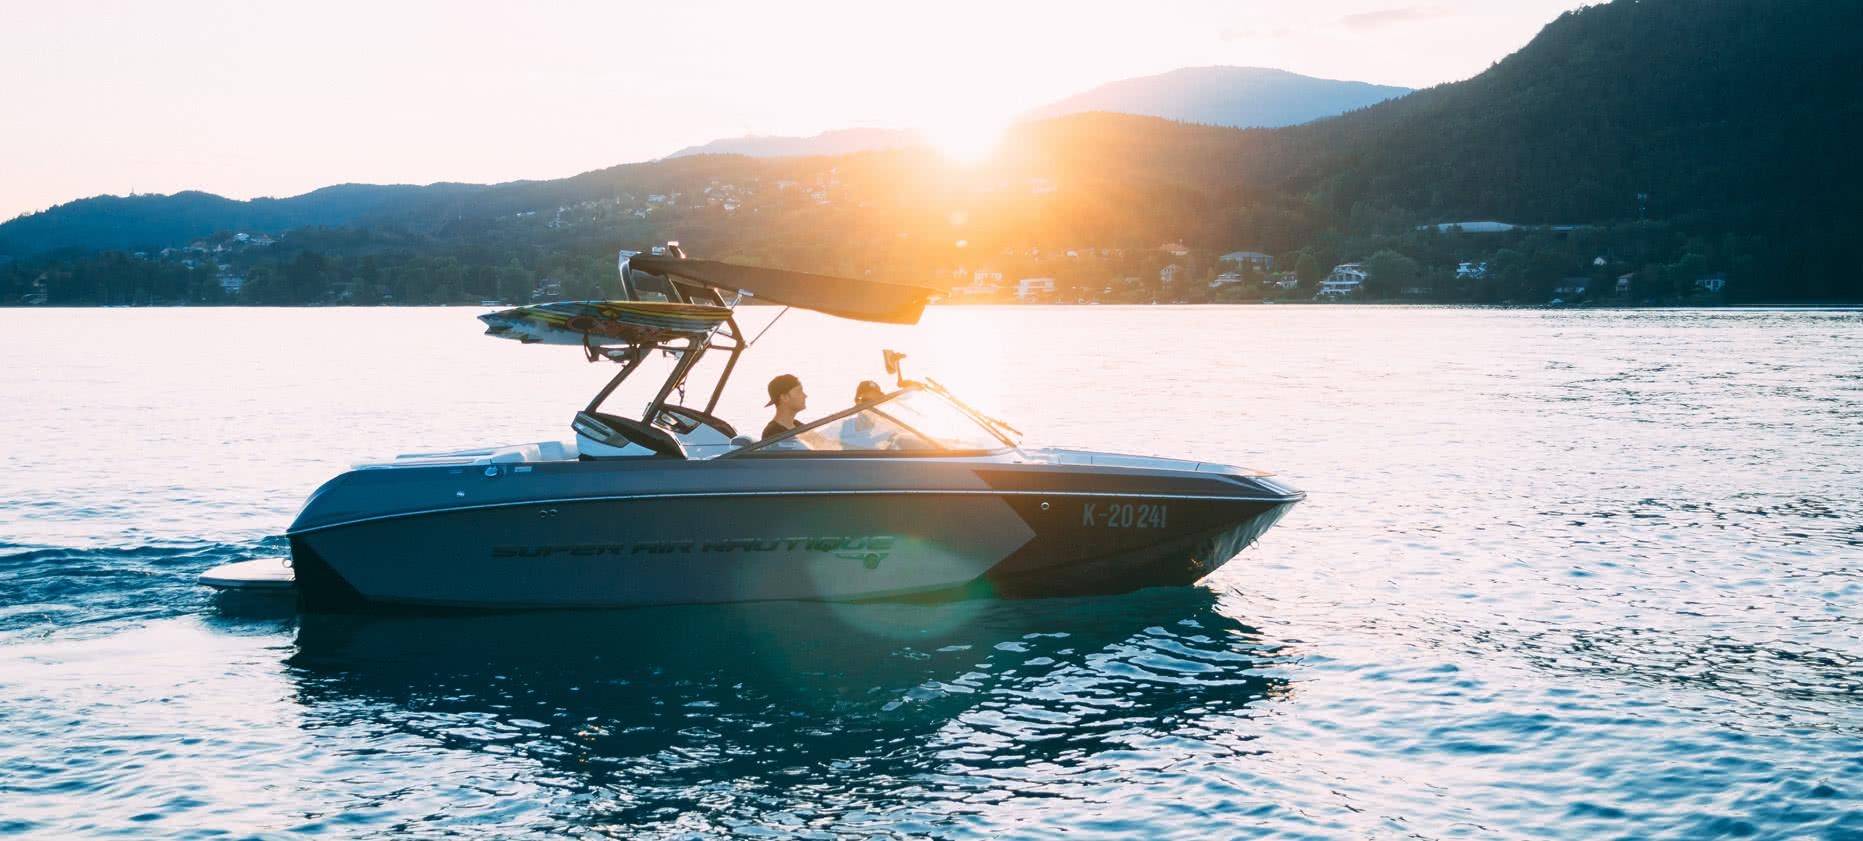 These are the things you should consider when chartering a boat